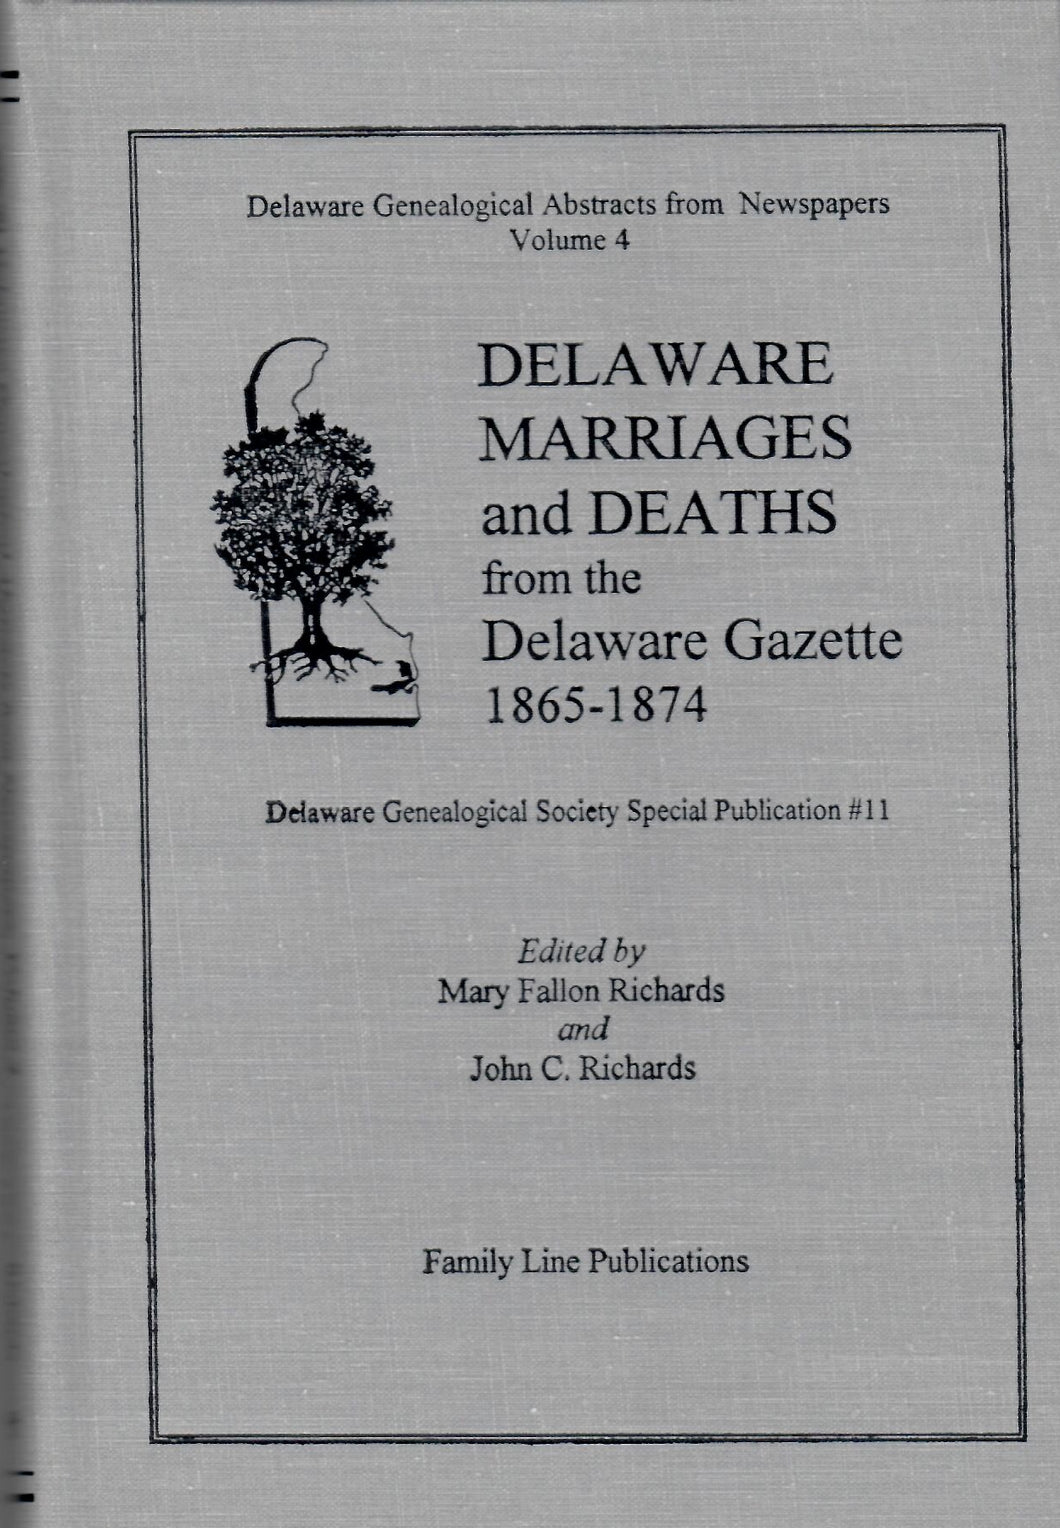 Delaware Genealogical Abstracts from Newspapers. Volume 4: Delaware Marriages and Deaths from the Delaware Gazette 1865-1874